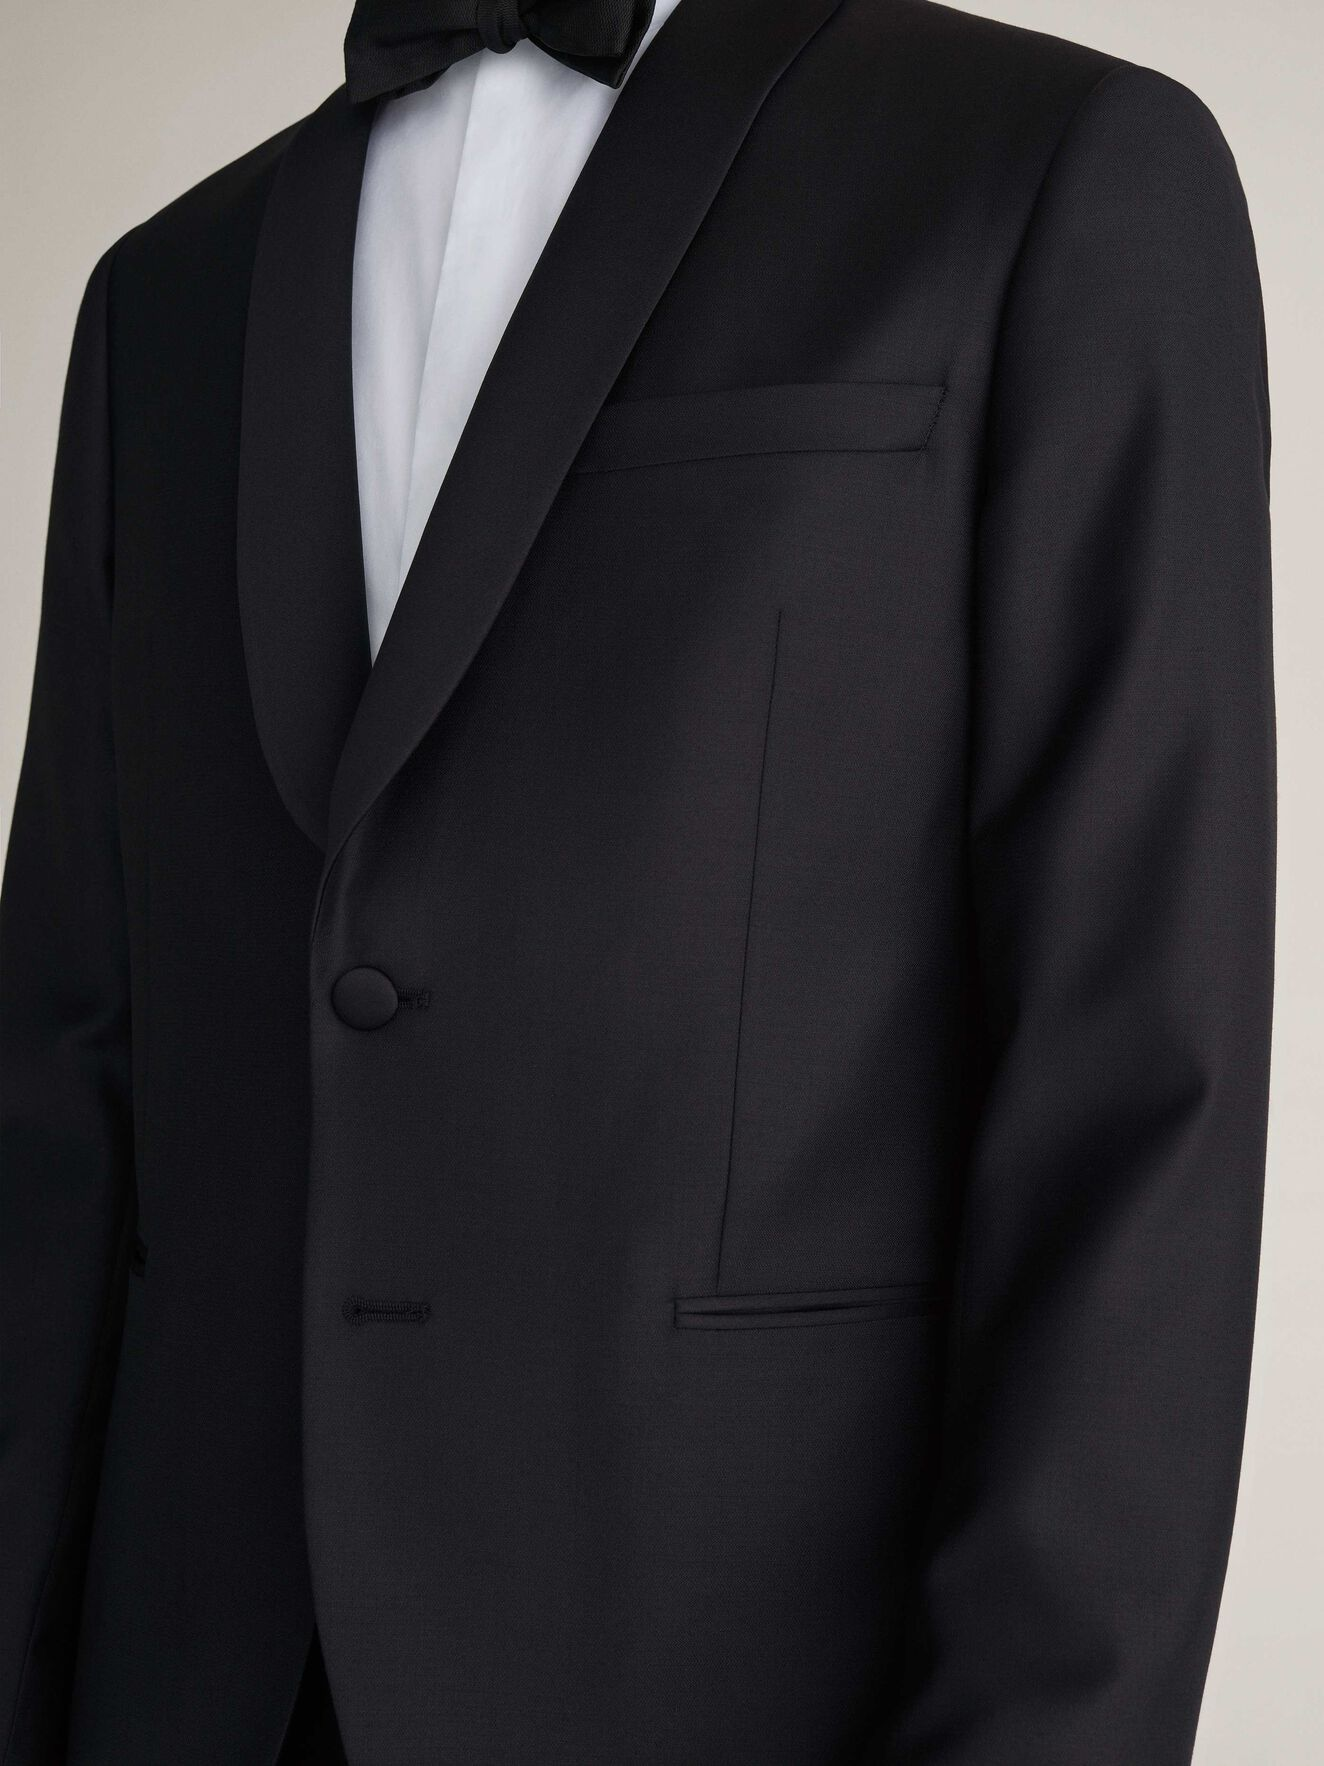 Jinatra Blazer in Black from Tiger of Sweden